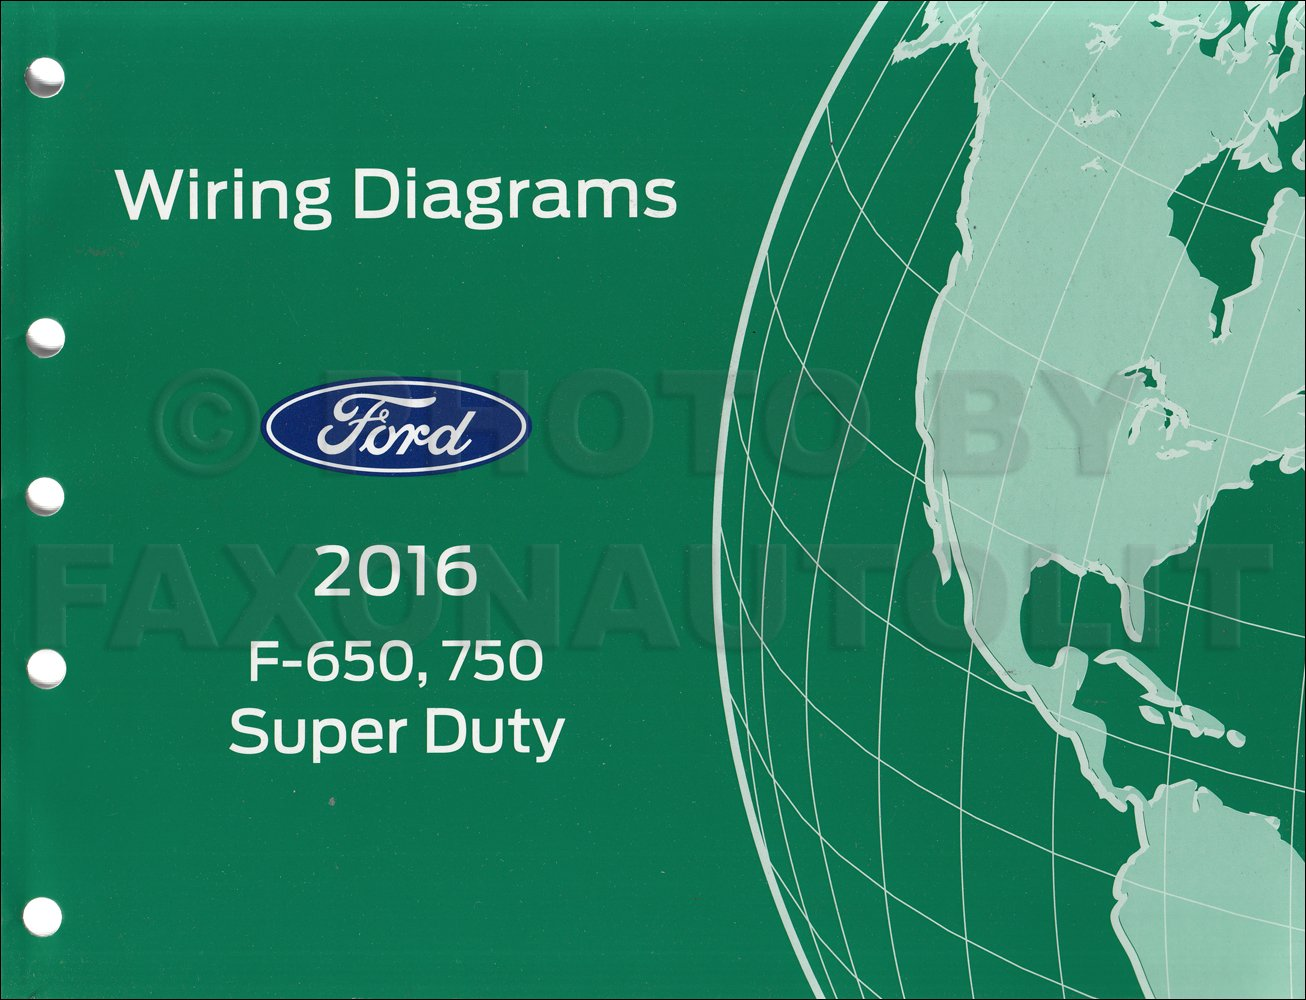 2016 Ford F-650 and F-750 Super Duty Truck Wiring Diagram Manual Original:  Ford: Amazon.com: Books | Ford F 750 Wiring Diagram |  | Amazon.com